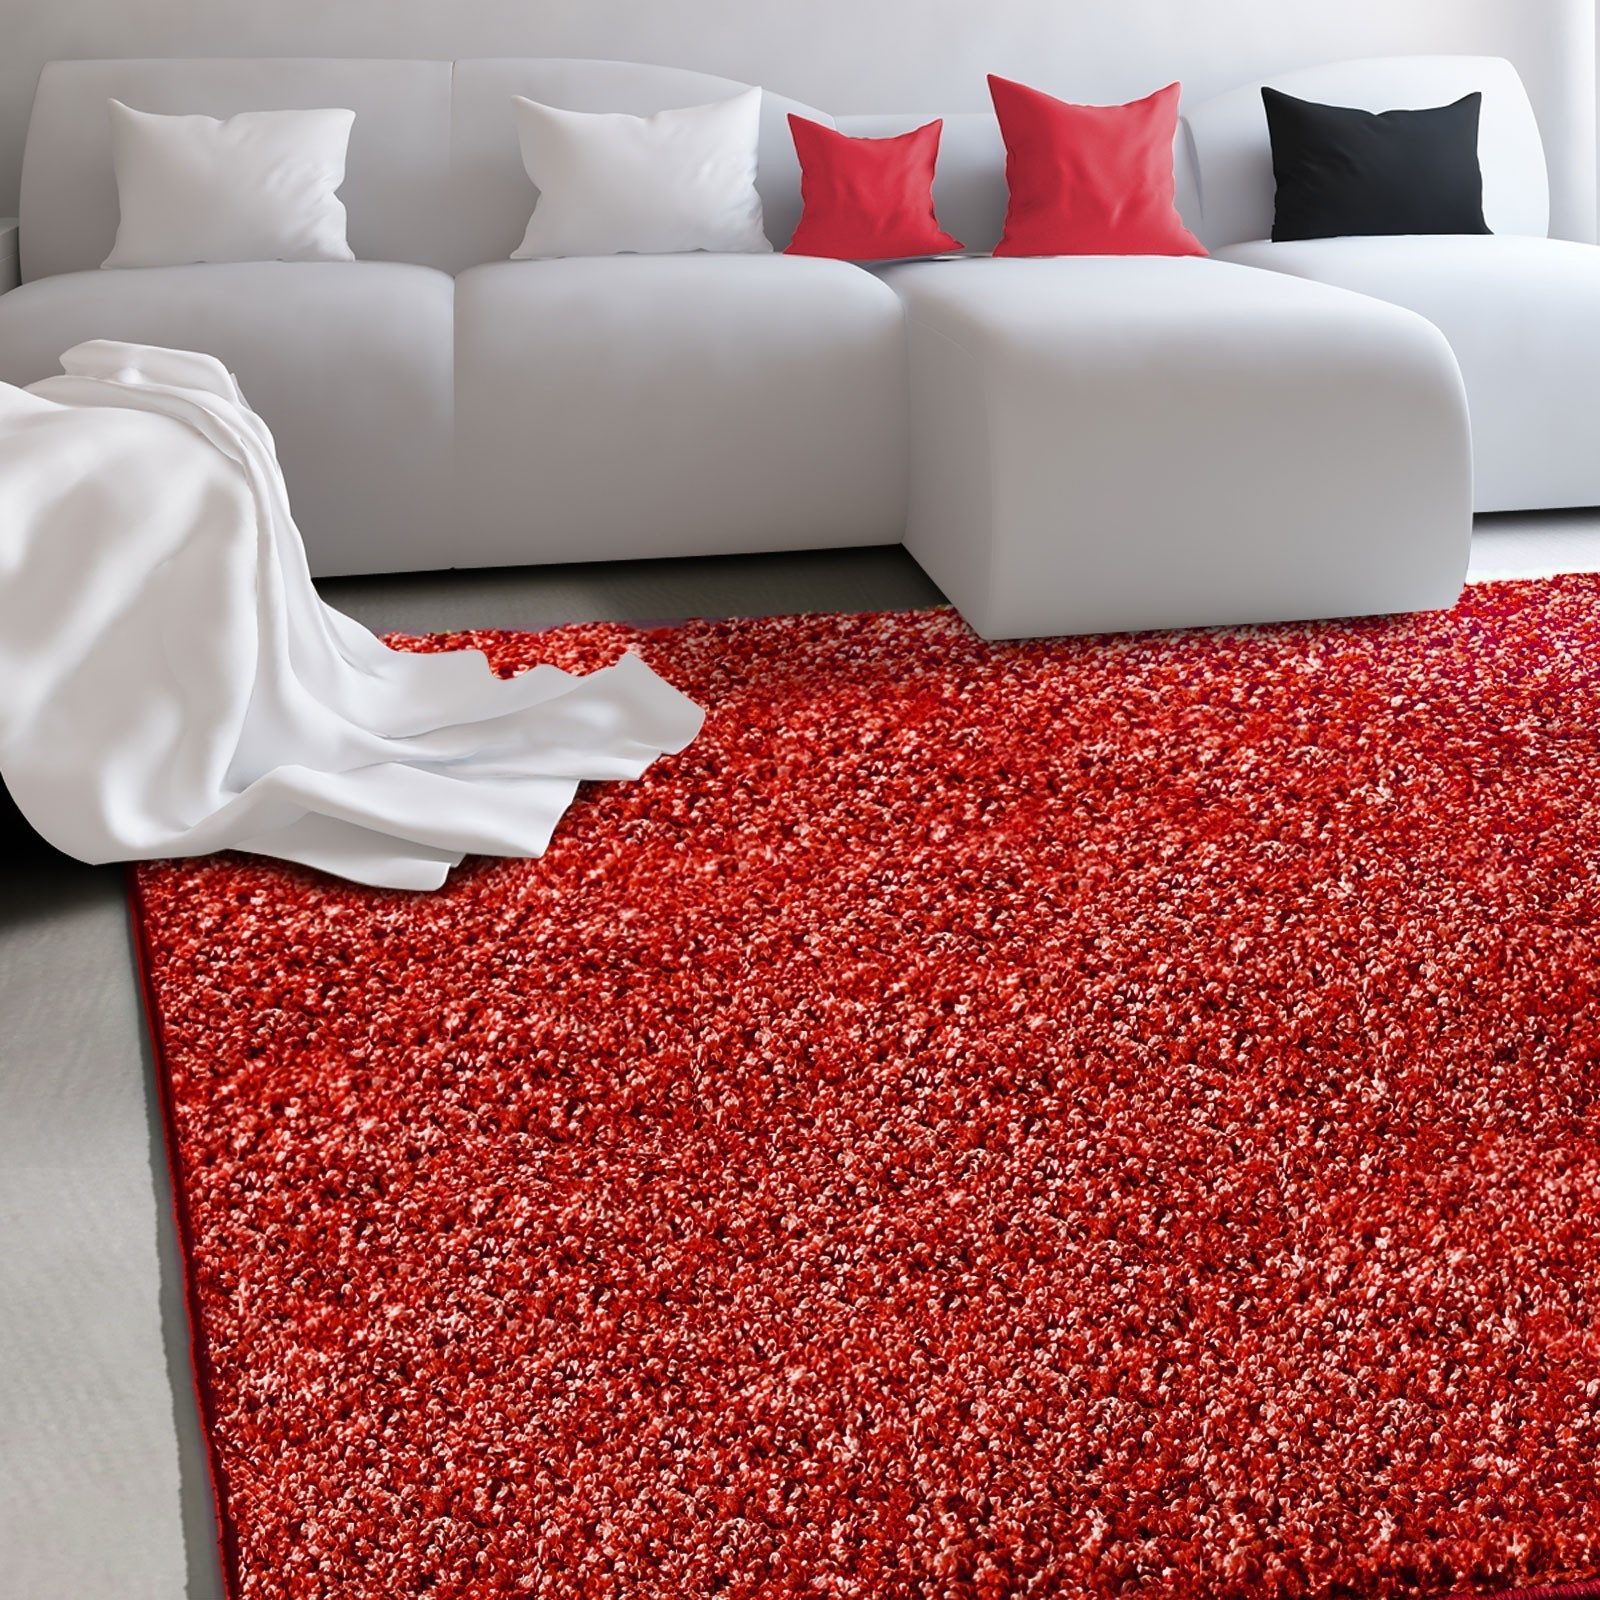 tapis salon rouge